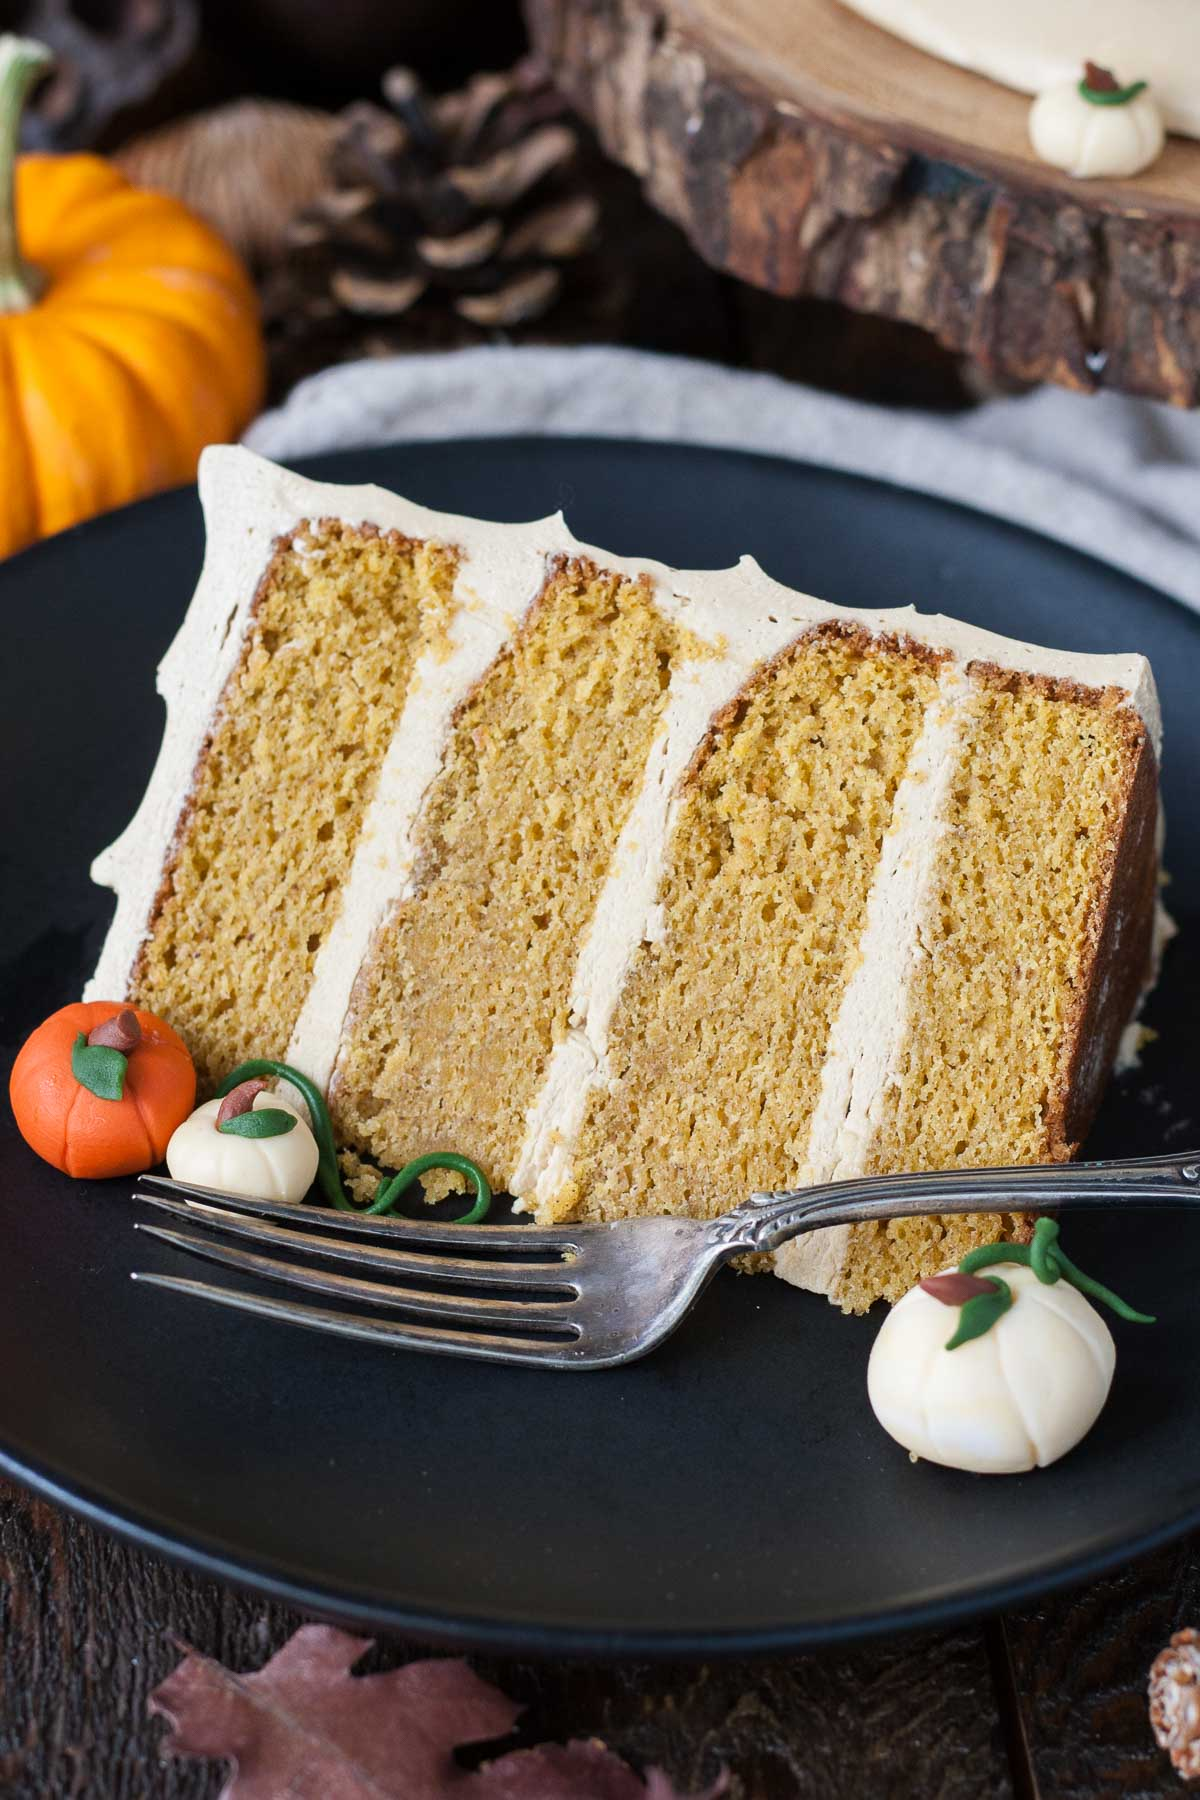 Slice of Pumpkin Spice Latte Cake